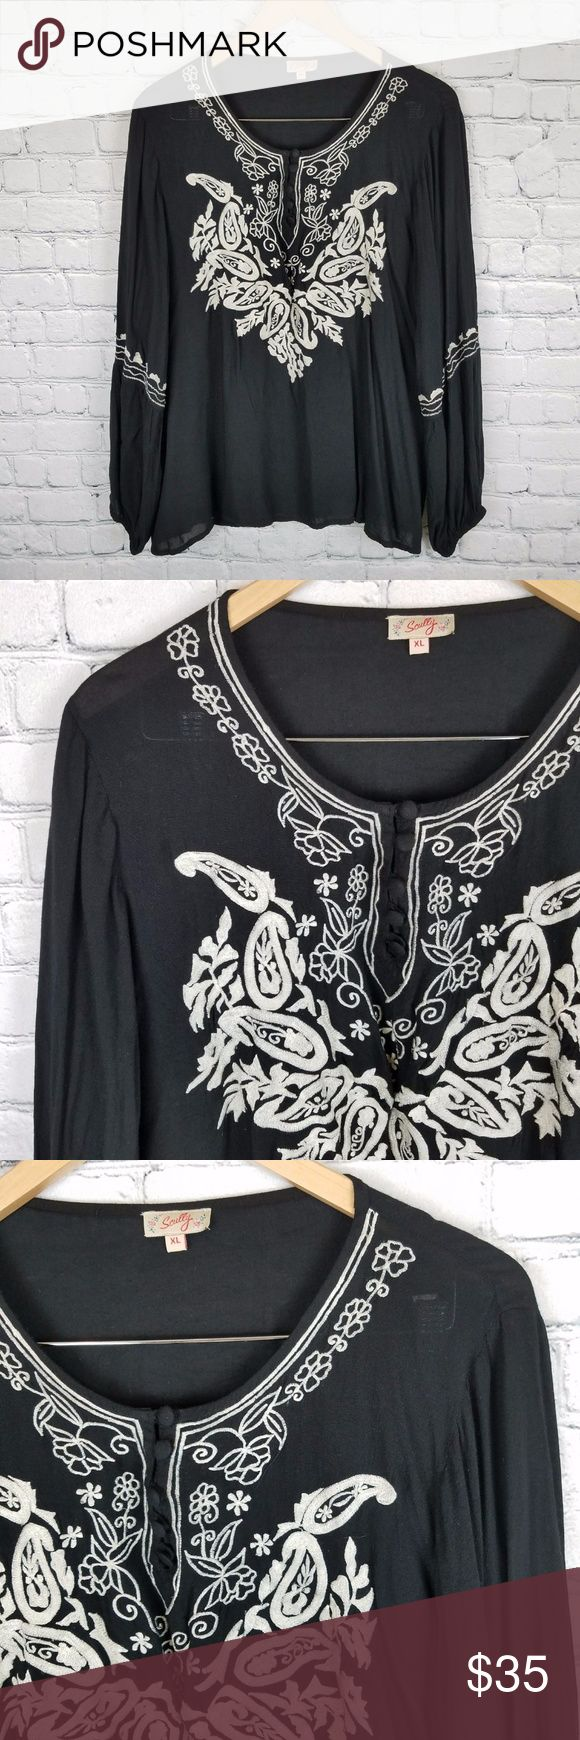 "Scully XL Boho Western Shirt Embroidered Women's black and white embroidered, long sleeve, shirt from Scully. Shirt is in excellent condition, free from any flaws or signs of wear. Comes from a some free home. Shirt is lightweight making it a little sheer. Size is a large and it measures as follows, laying flat:  Sleeve length-22"" Length-26"" Bust-23.5""  Thanks for looking! Scully Tops Blouses"